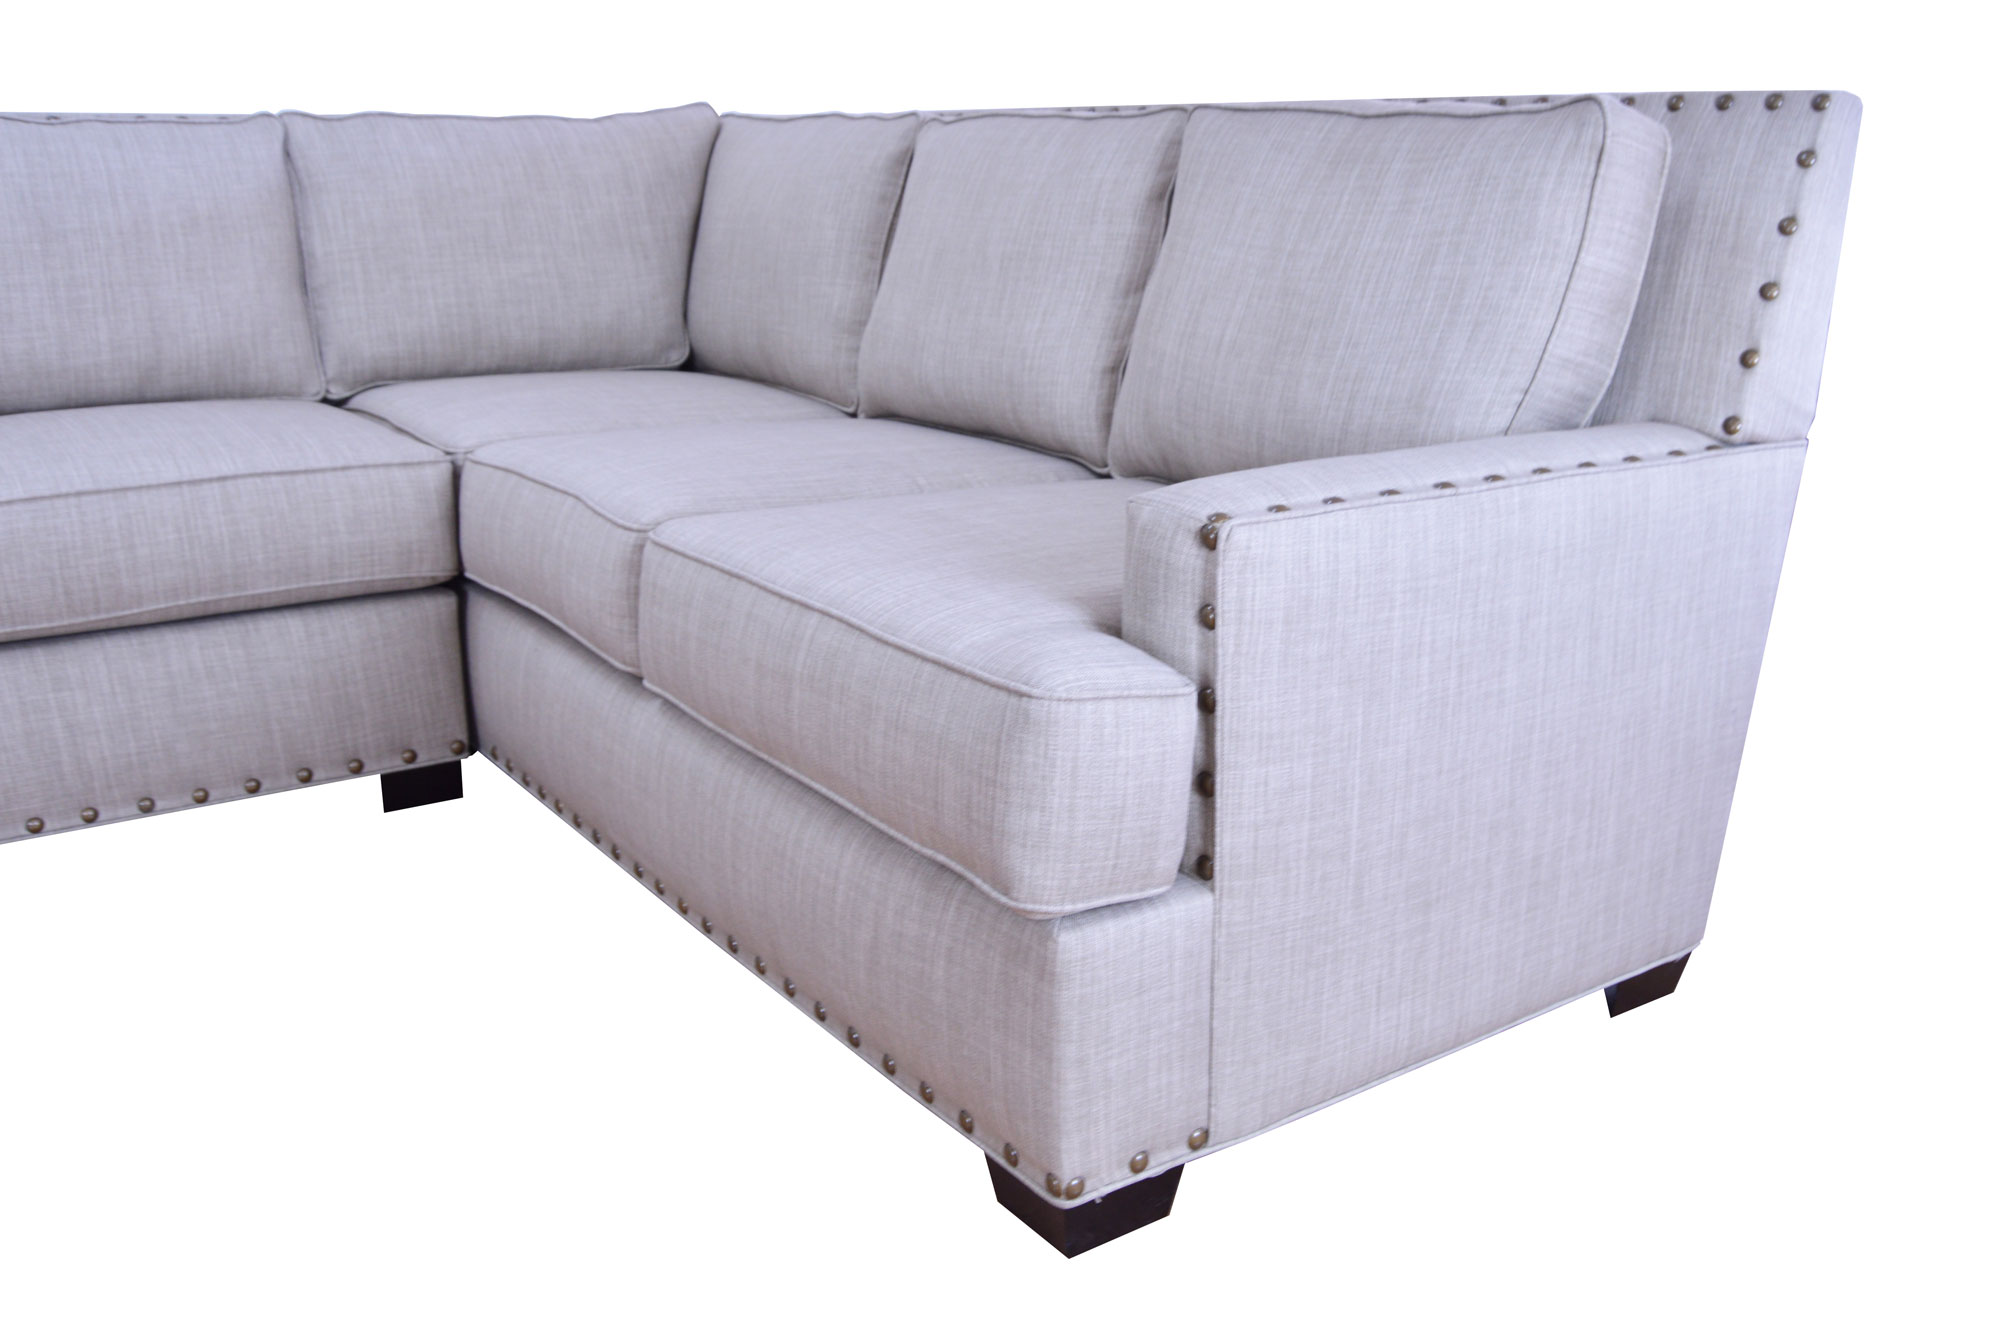 custom sofas for less concord jersey sofa slipcover reviews beverly hills 4